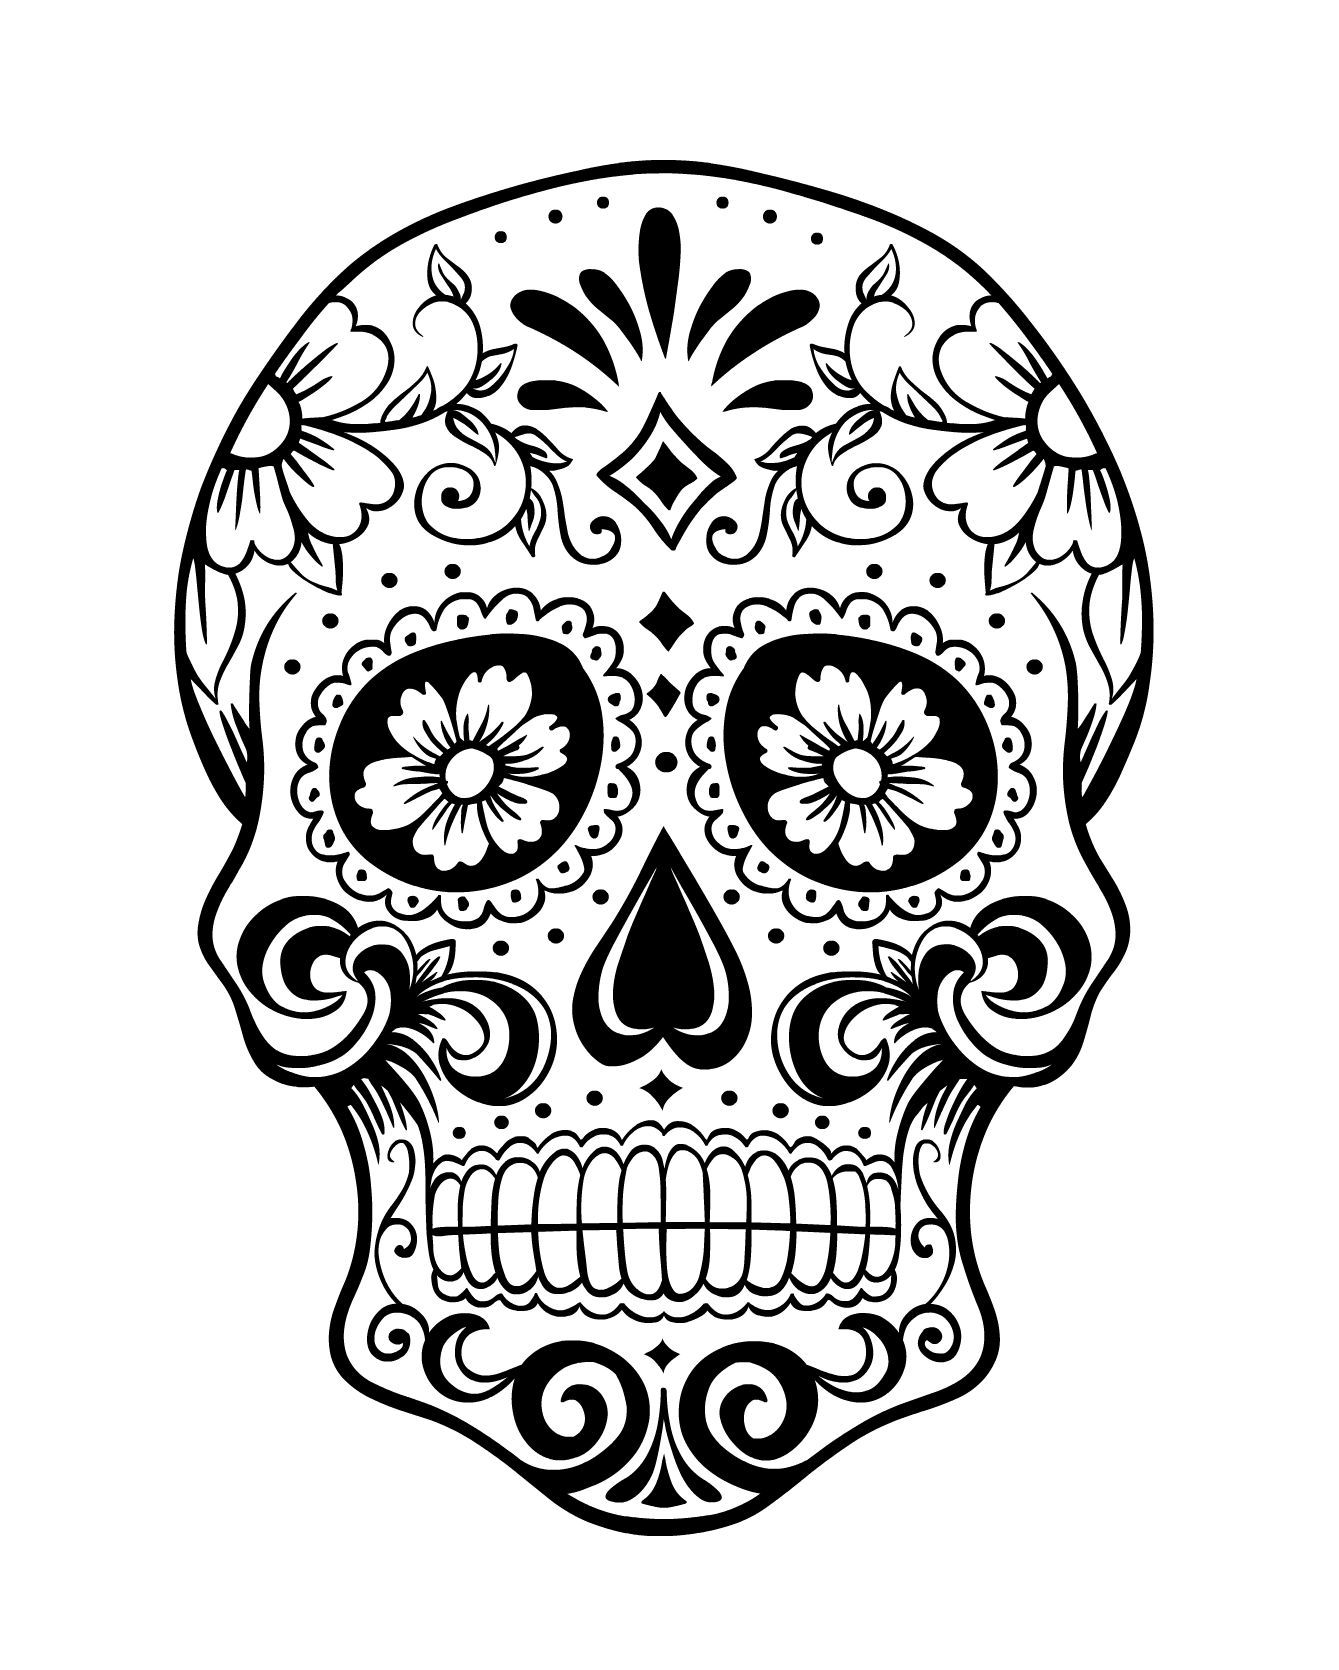 Day of the Dead Skull Coloring Page 1 Skull coloring